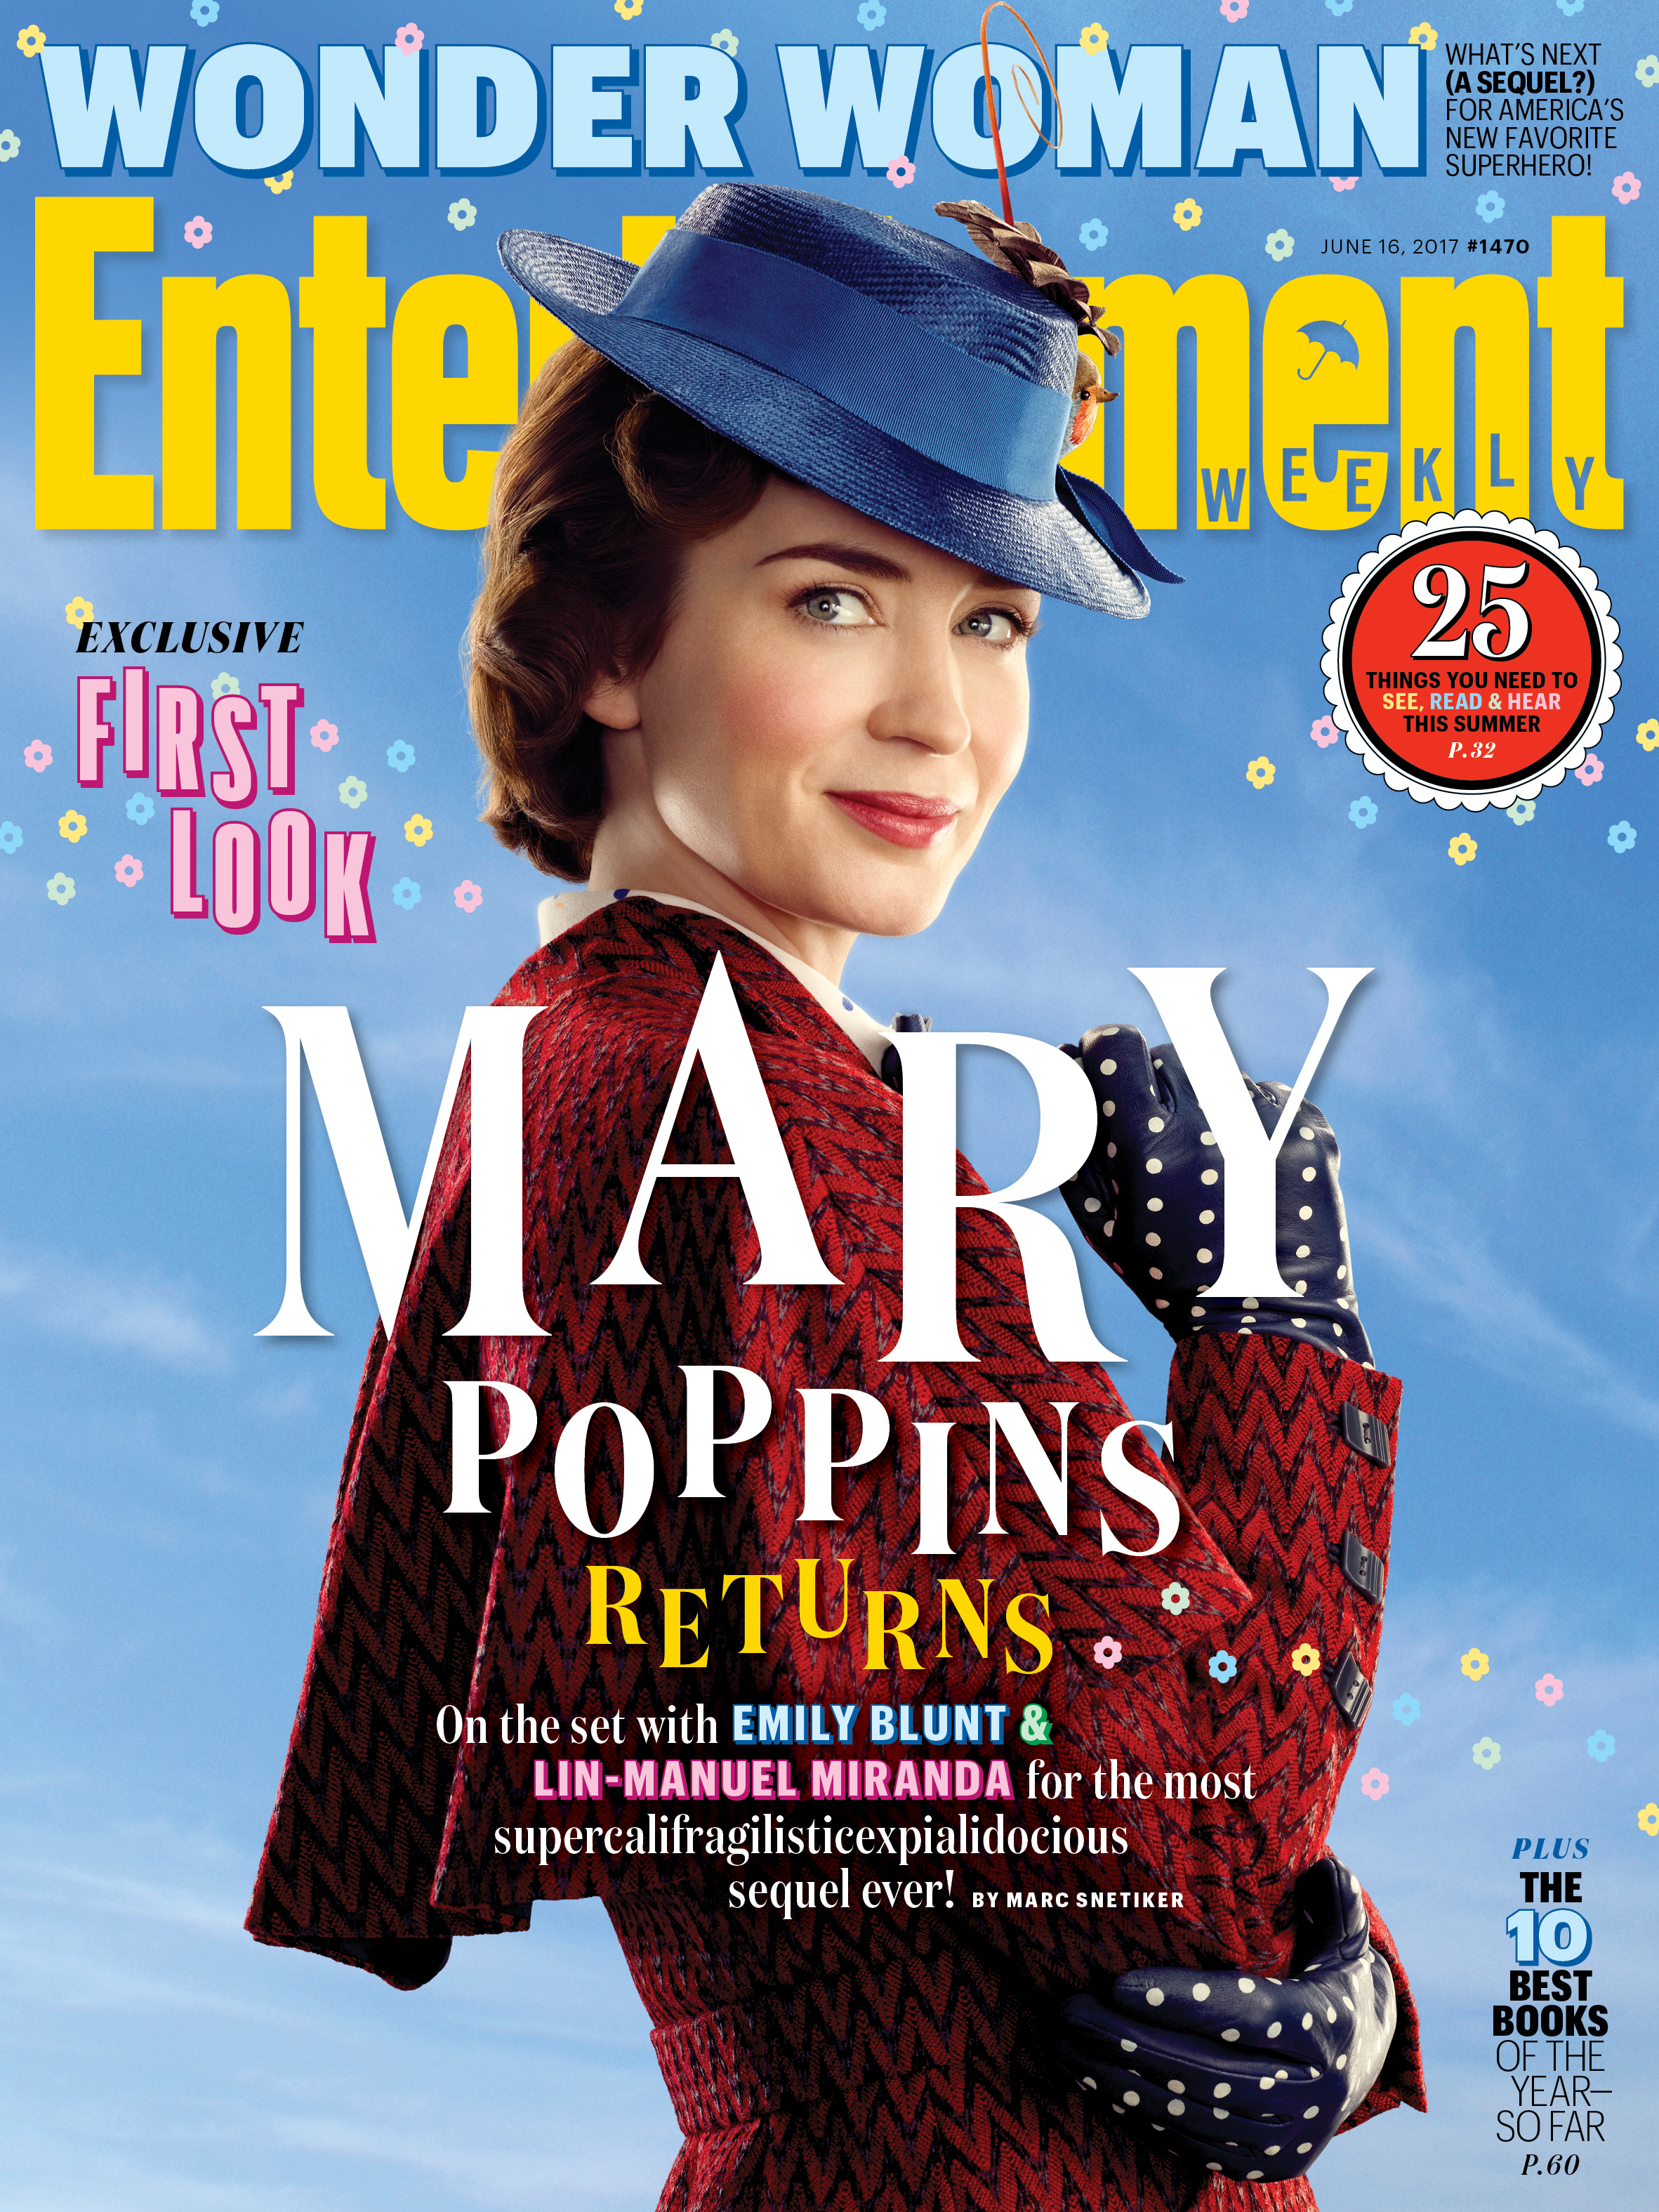 Take a Look Inside Disney's Mary Poppins Returns